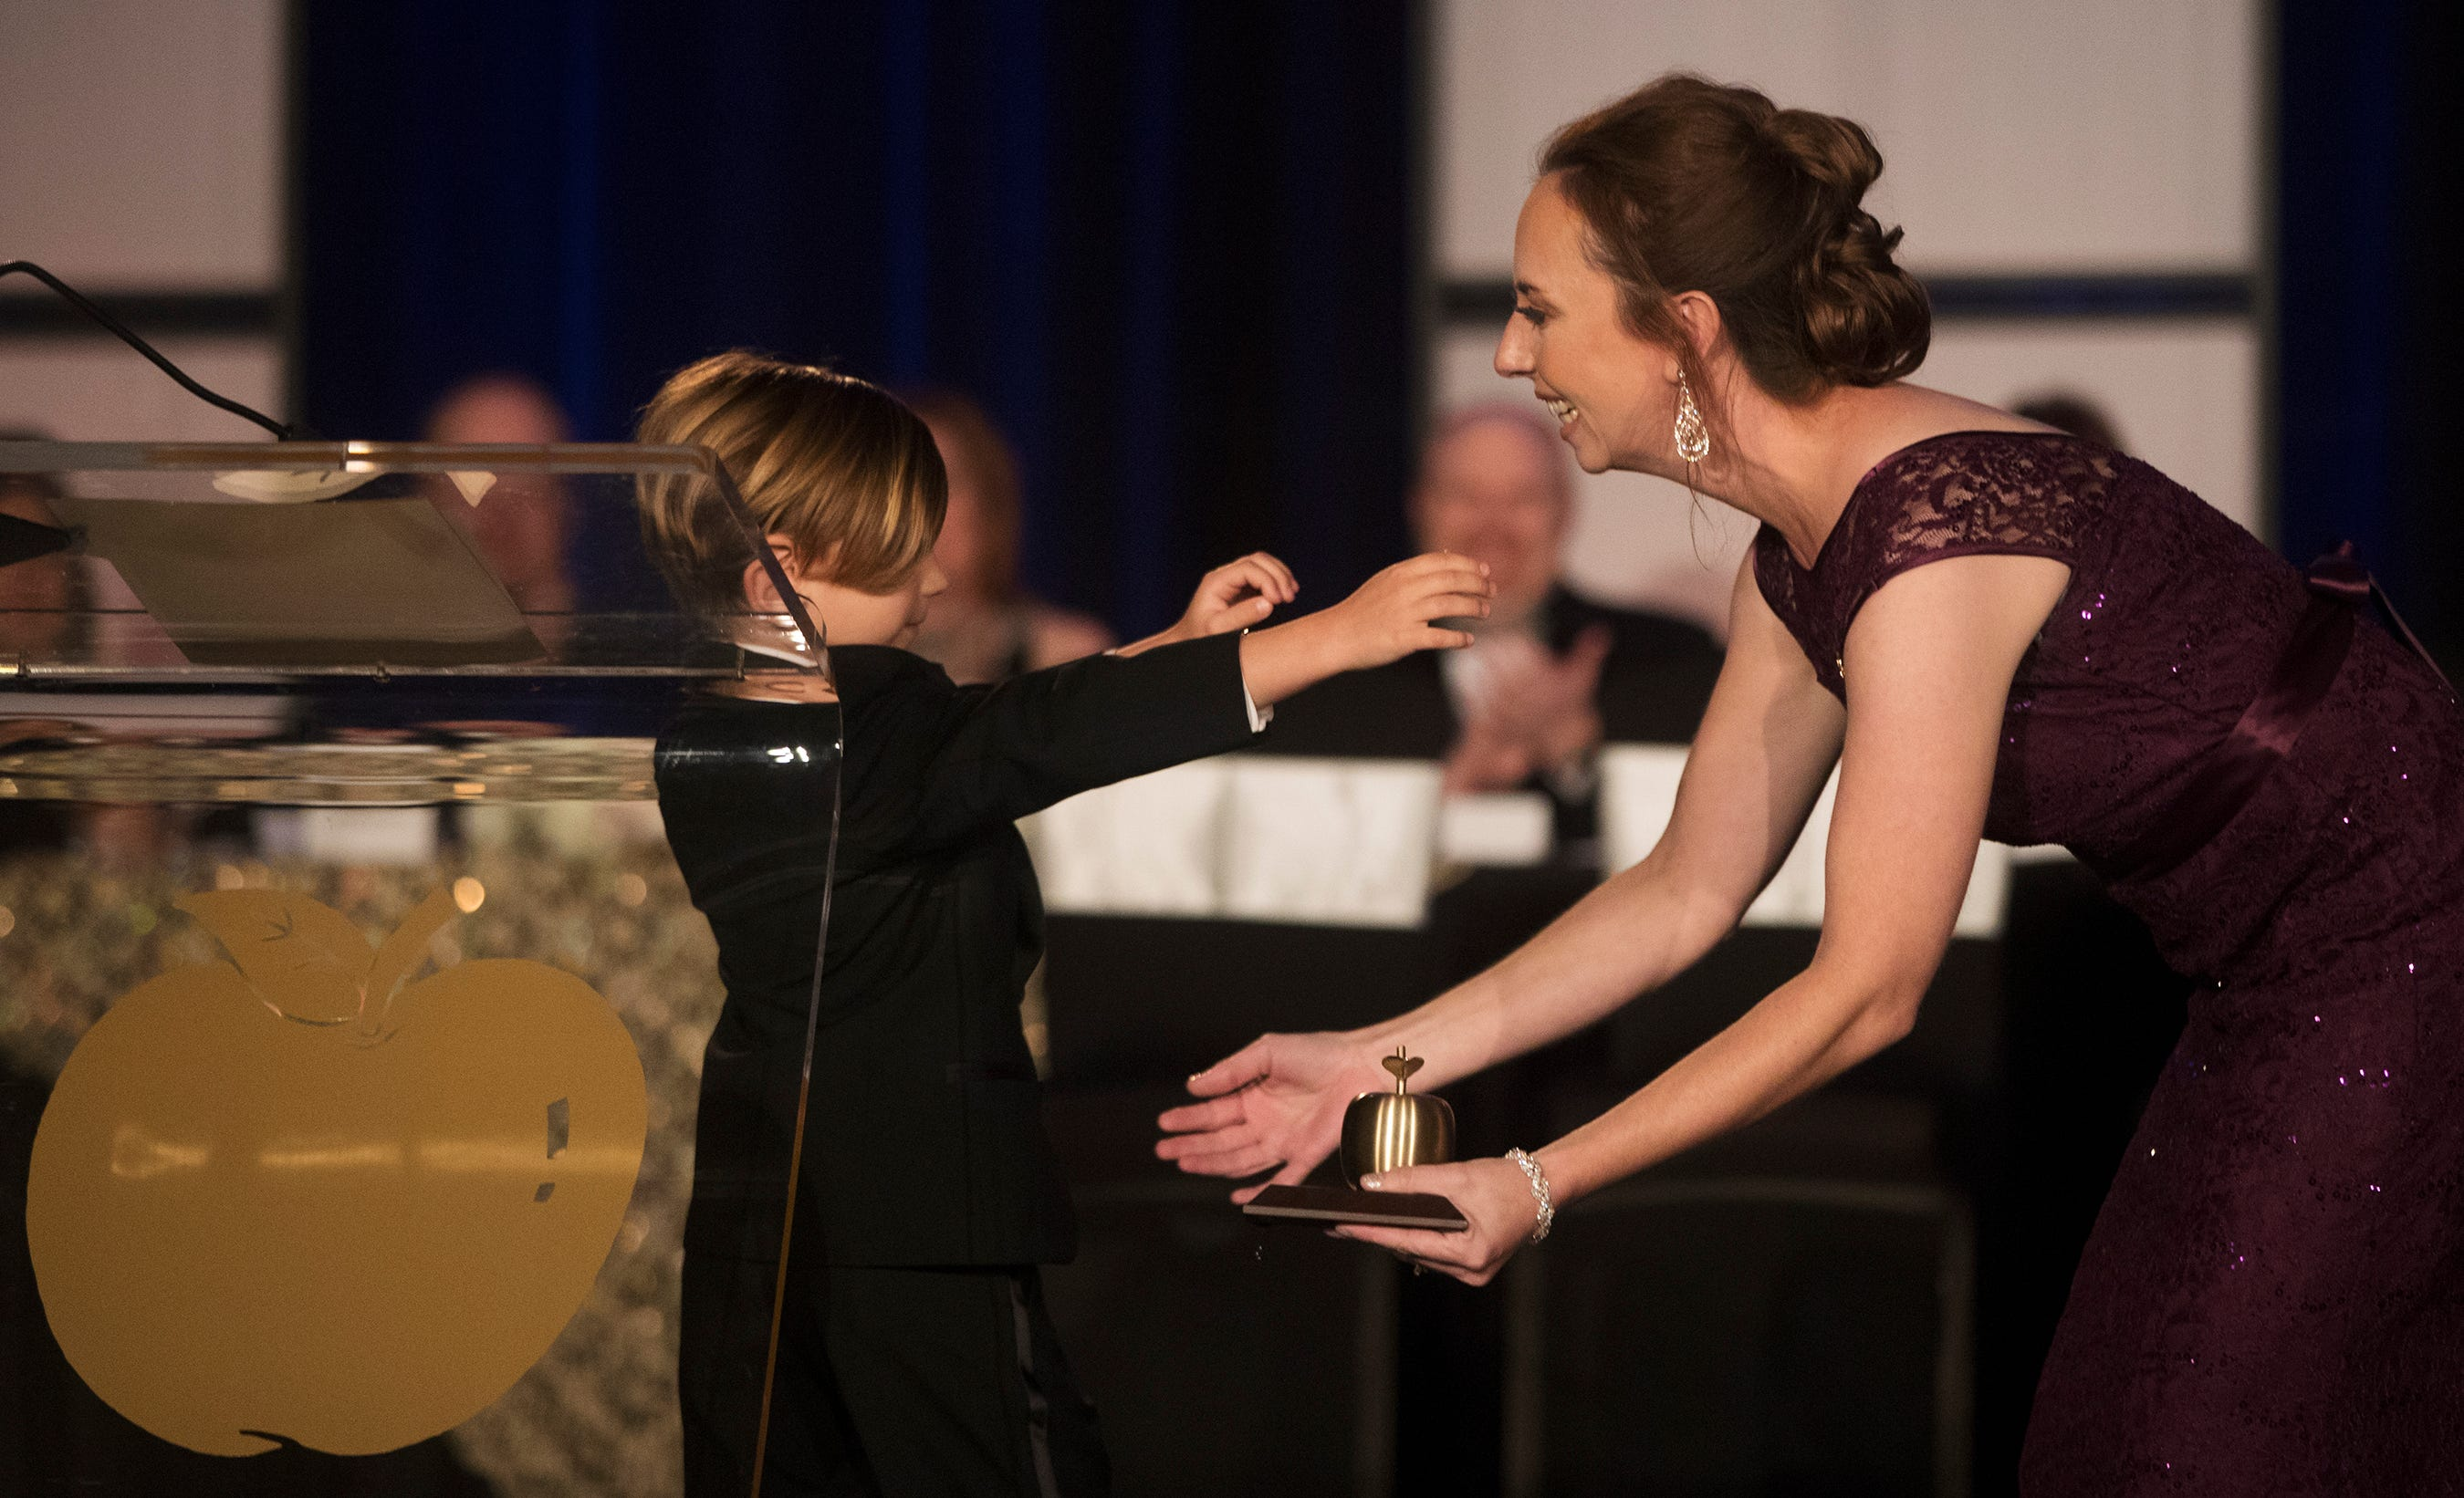 Heights Elementary School student Cason McNeff presents a Golden Apple to his teacher Kristina Caudill on Friday at the Golden Apple Teacher Recognition Banquet at the Hyatt Regency Coconut Point in Bonita Springs.